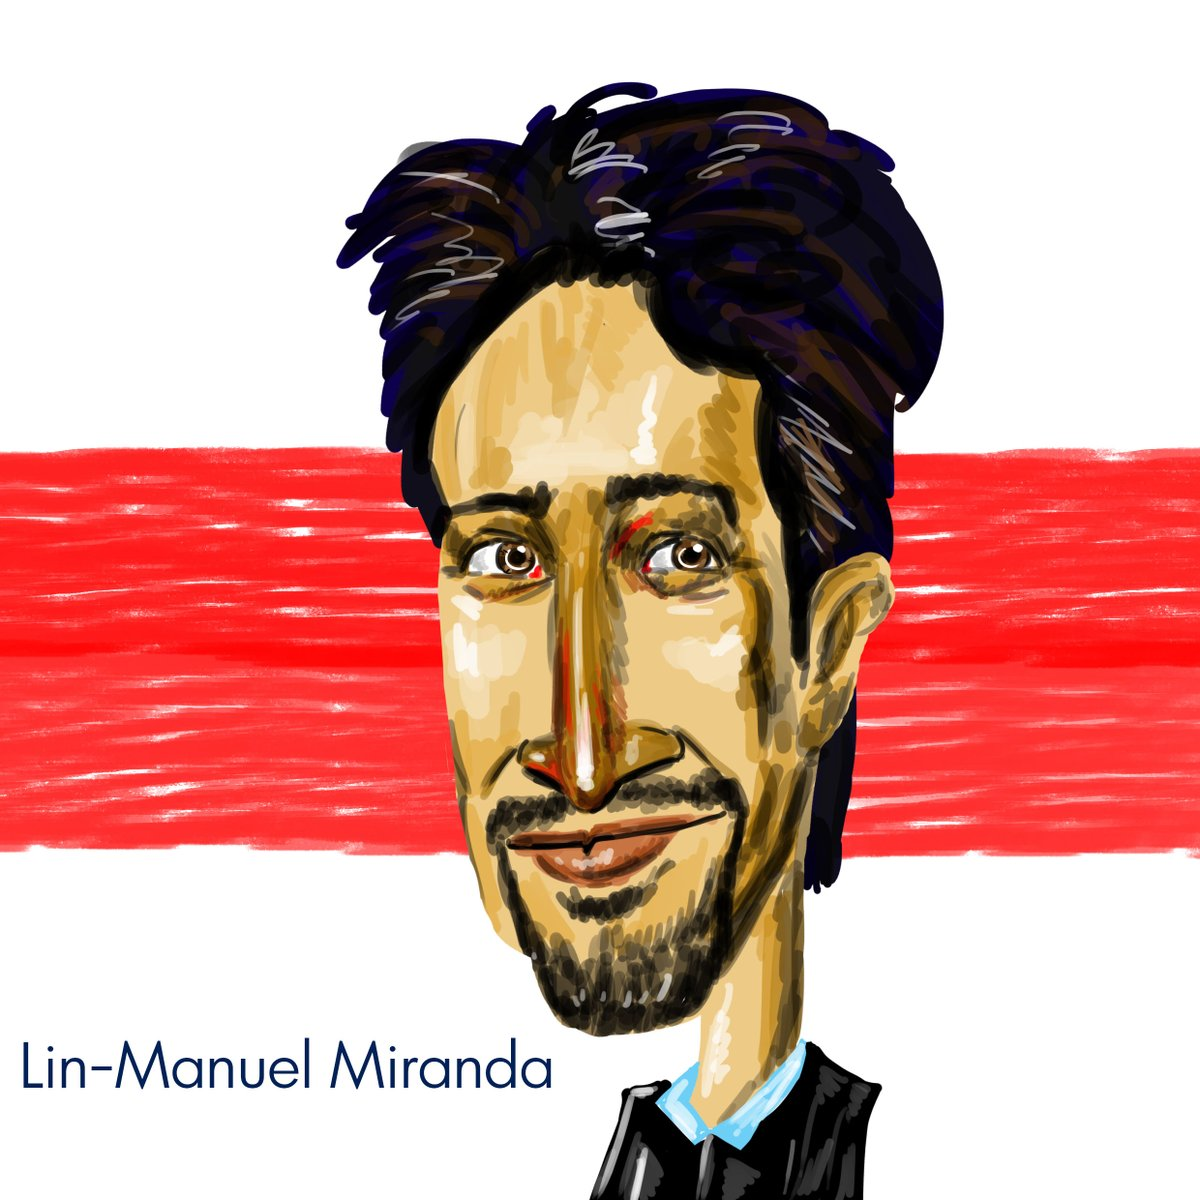 Lin-Manuel Miranda #caricature #caricatureresolution2021 #caricatura #cartoon #art #design #drawing #doodle #doodles #digitalart #photoshop #instadraw #шарж #карикатура #рисунок #картинка #андруша #фабричный #гродно https://t.co/l4ZBqc6n55